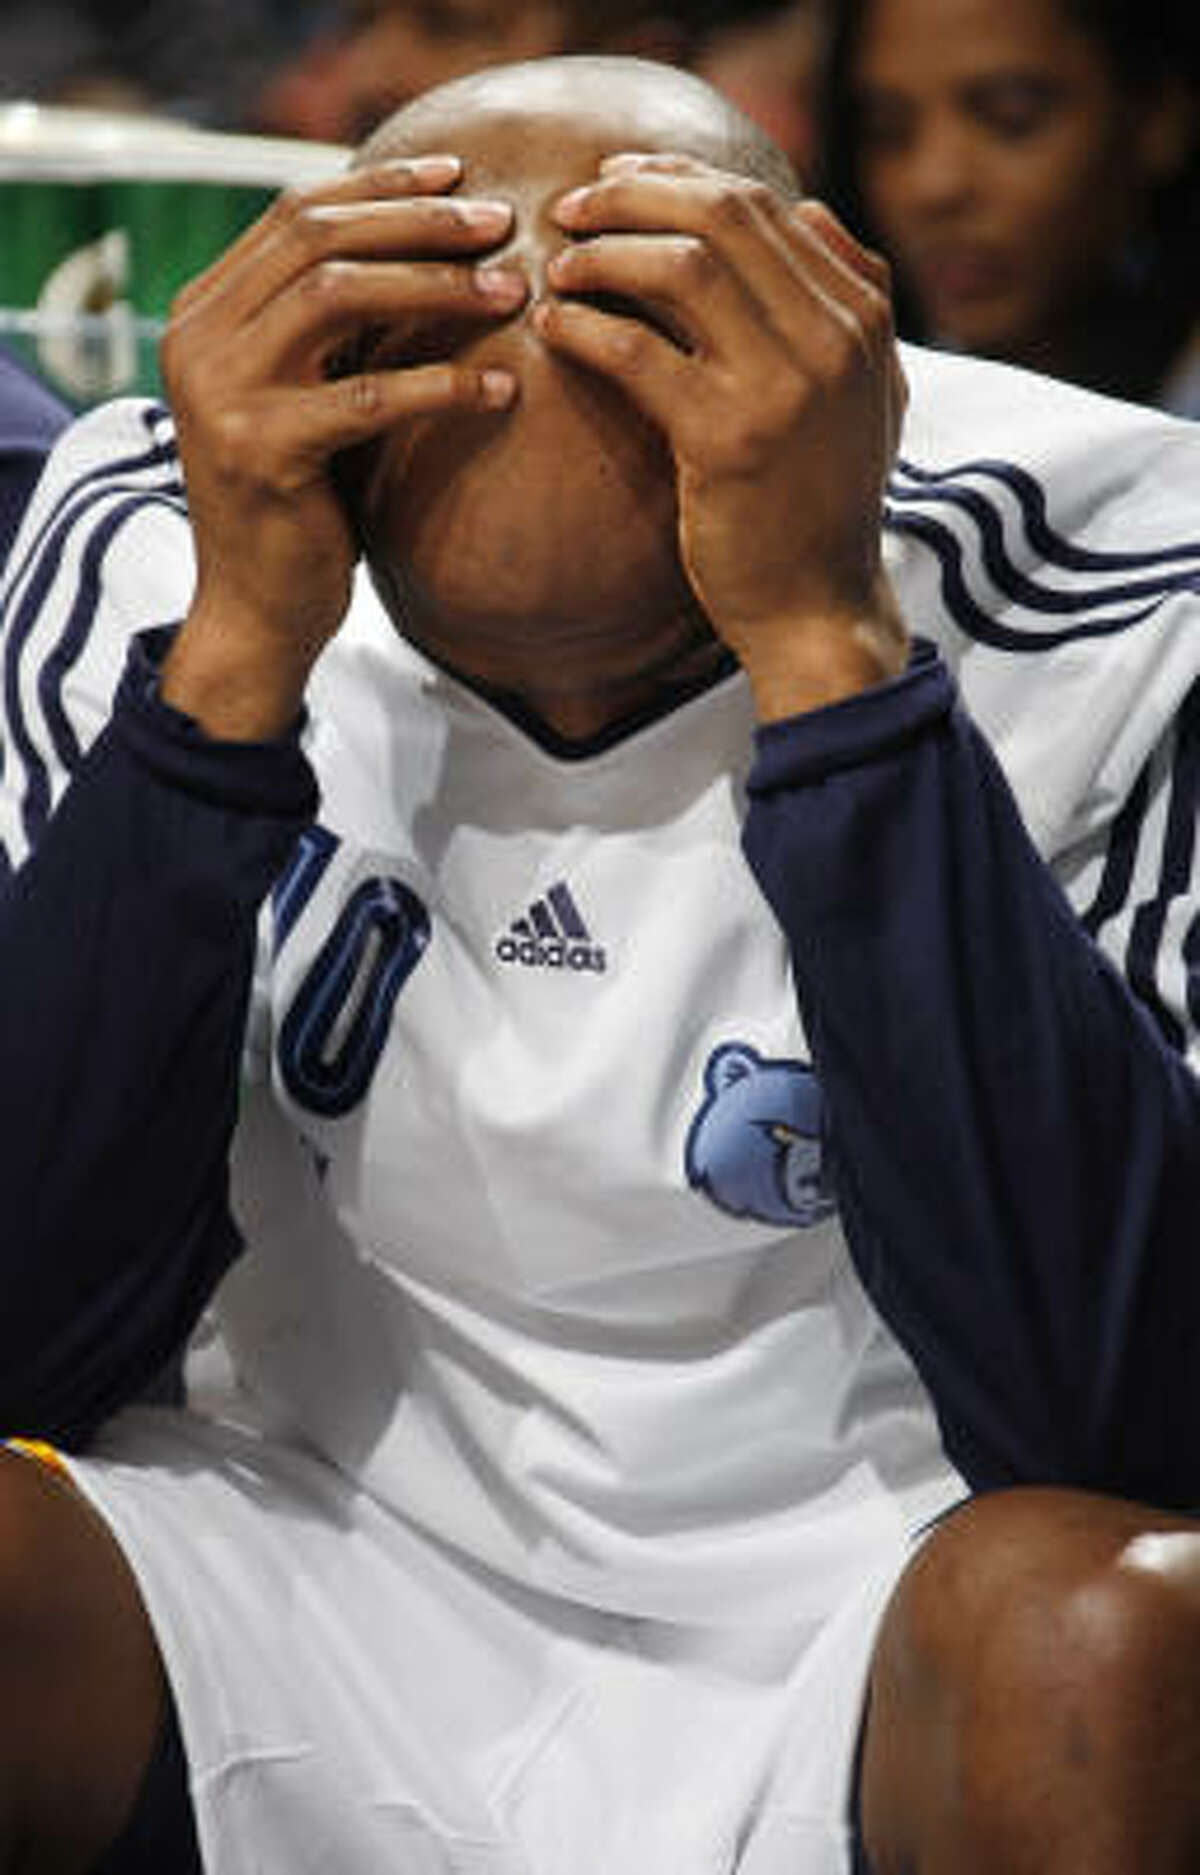 Grizzlies guard Jamaal Tinsley buries his face in his shirt during the loss. Tinsley missed all five of his shots in his 14:45 on the court.